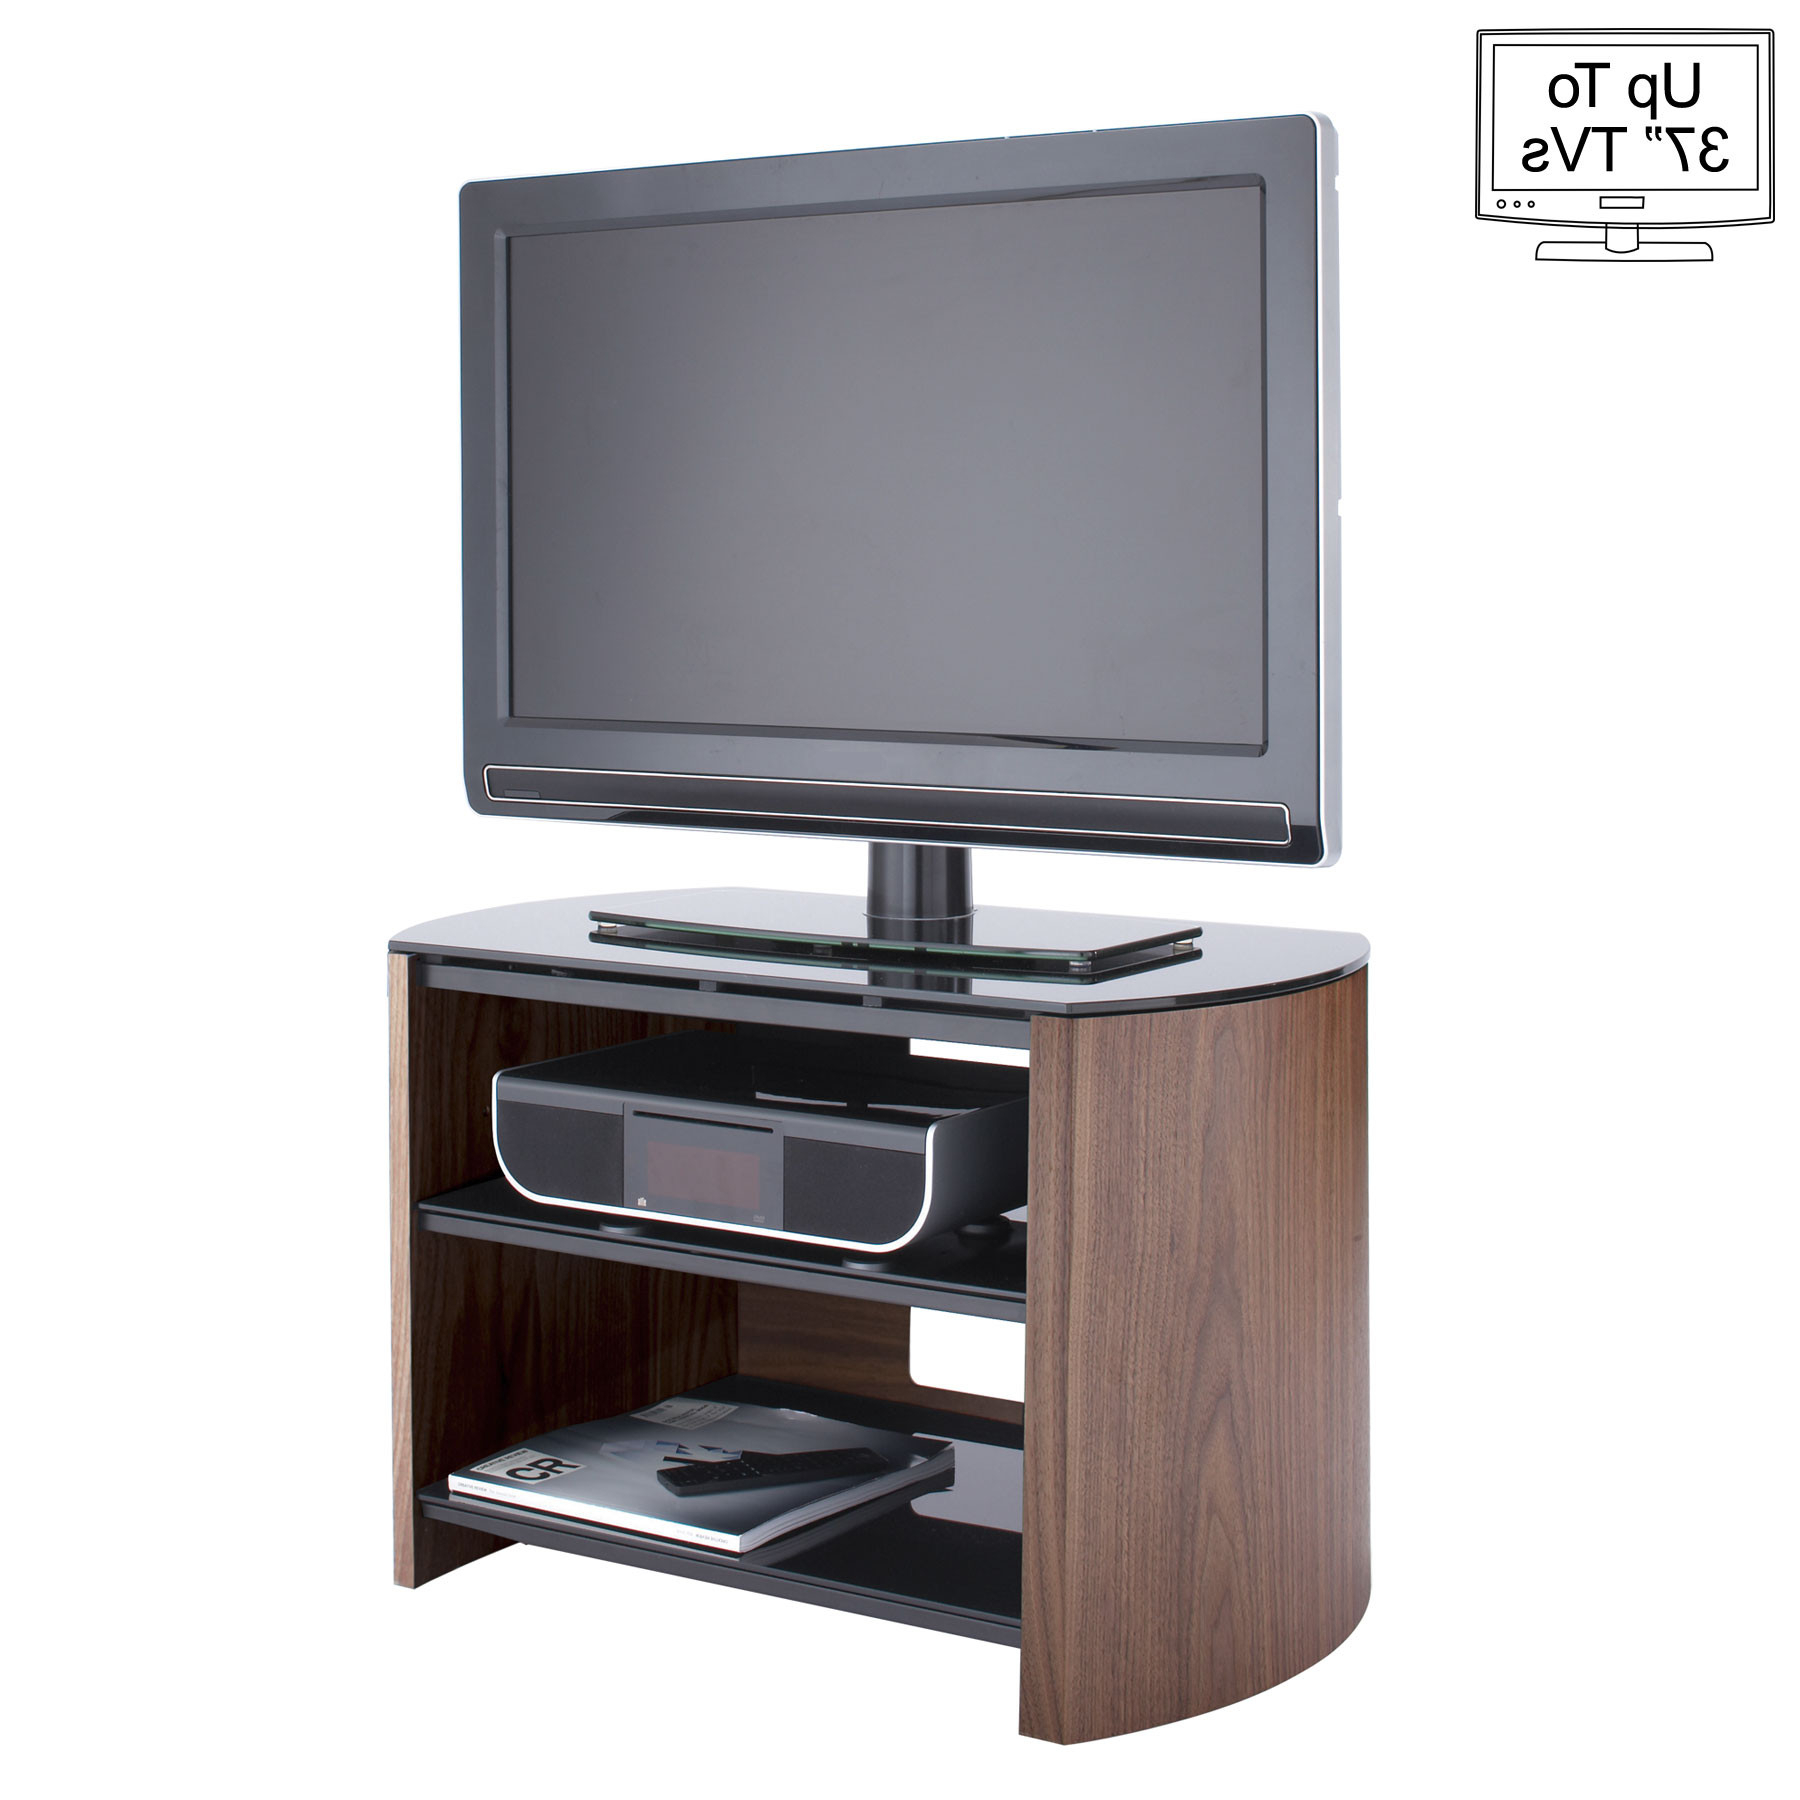 "Famous Alphason Finewood 75cm Walnut Tv Stand For Up To 37"" Tvs Regarding Walnut Tv Stands (View 14 of 20)"